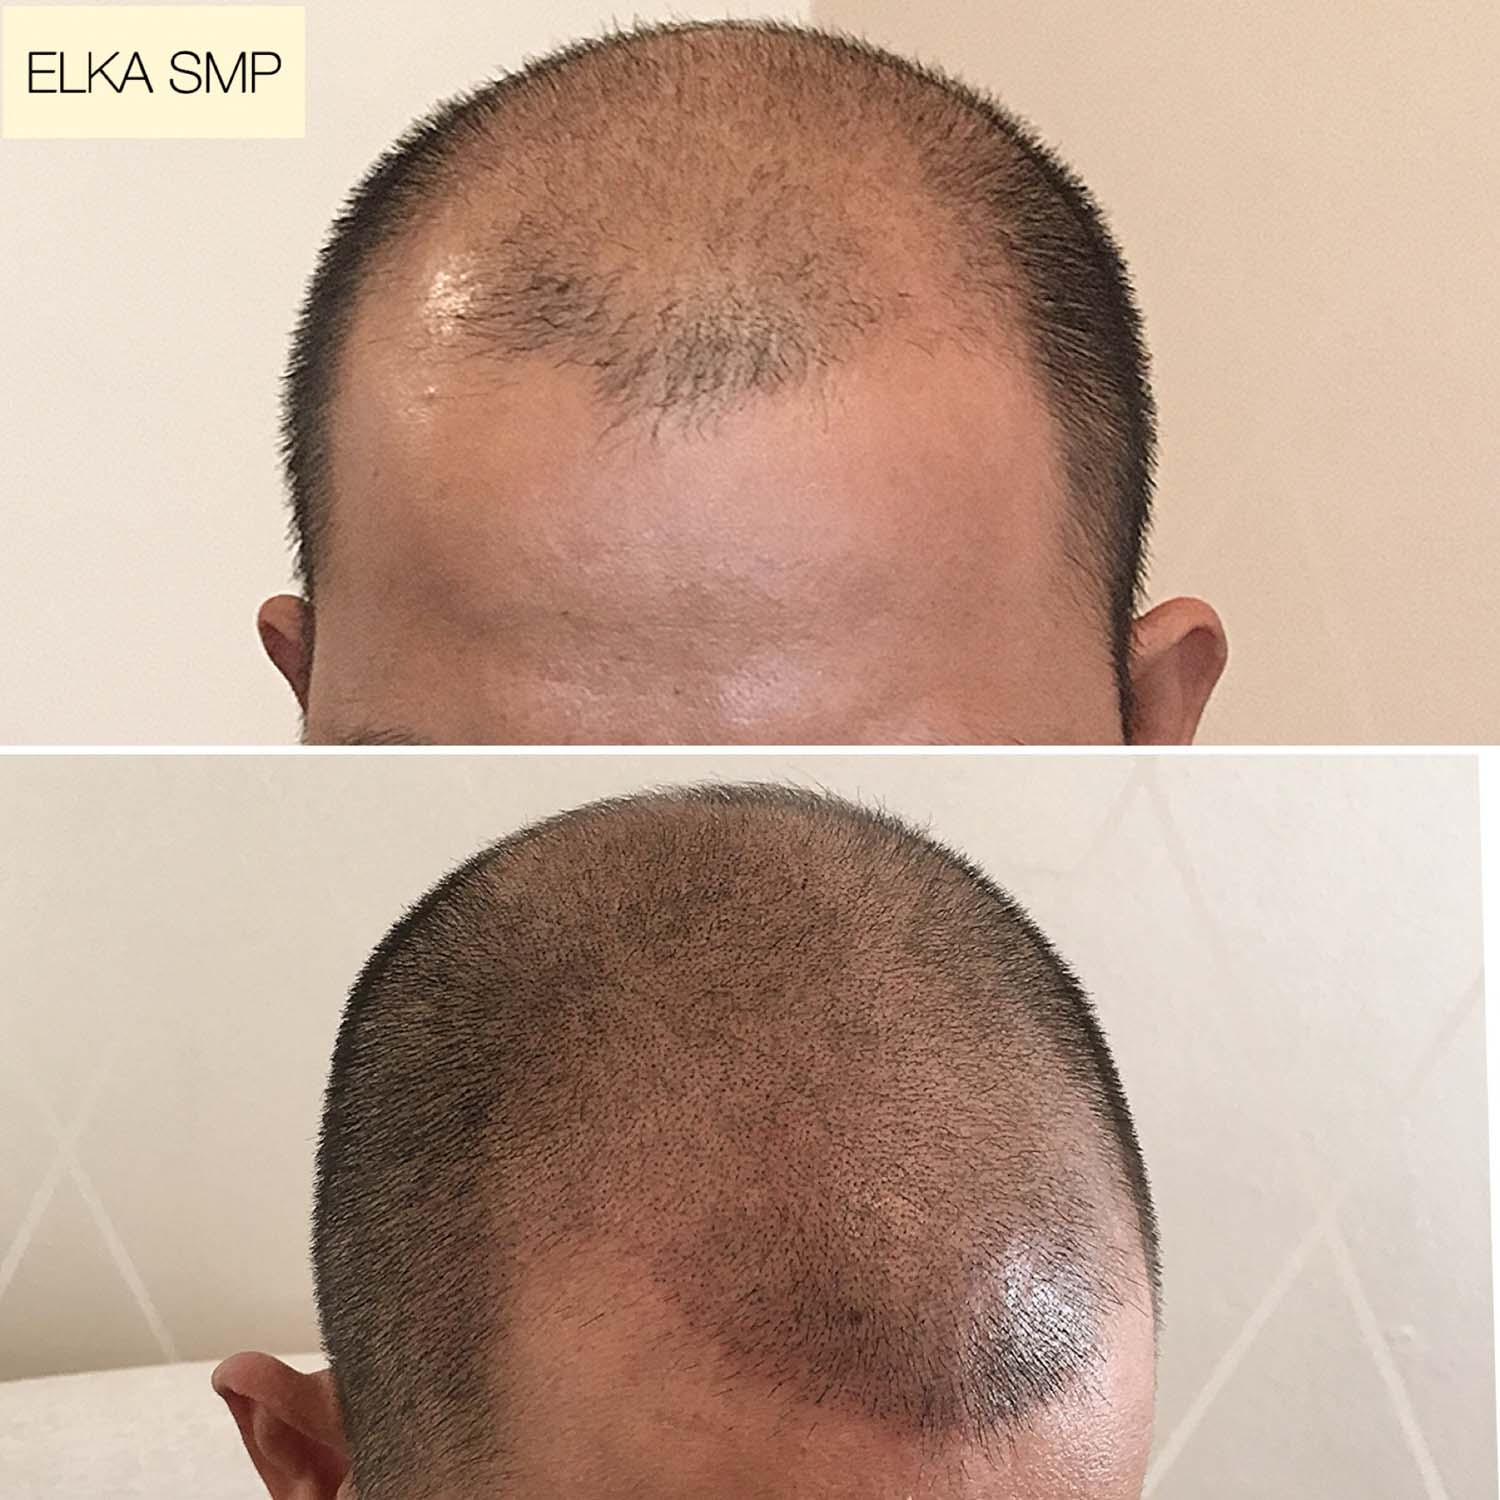 SMP by Elka clinic